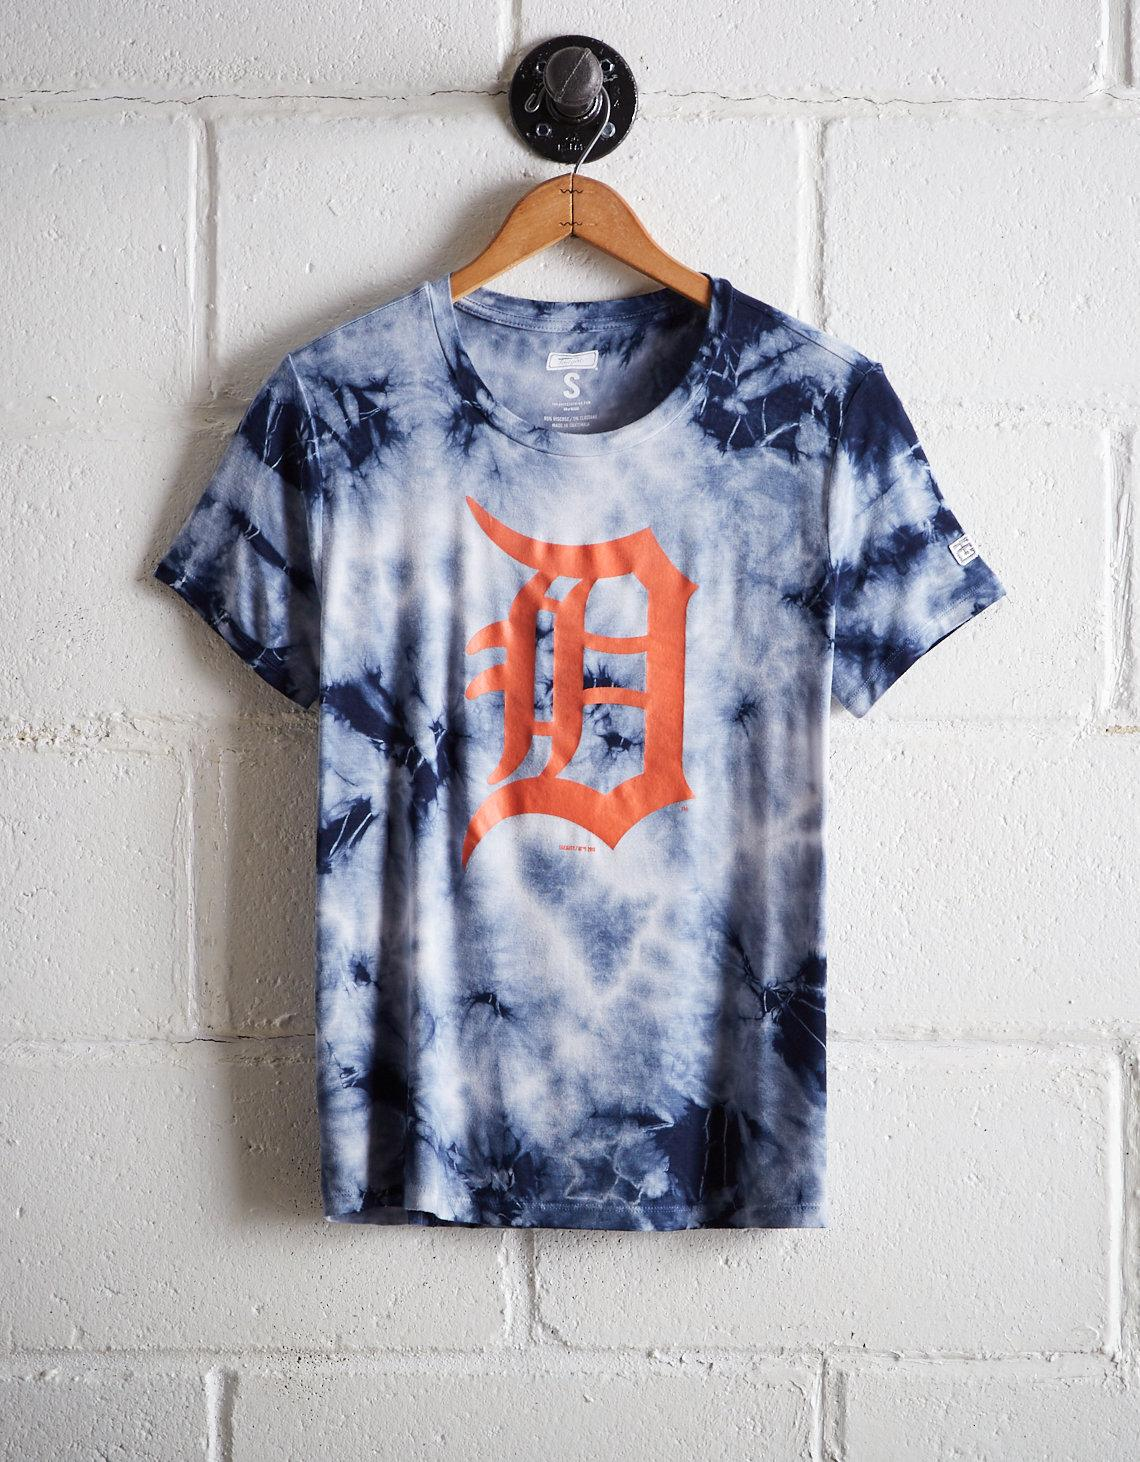 Lyst - Tailgate Women s Detroit Tigers Tie-dye T-shirt in Blue 60a783423